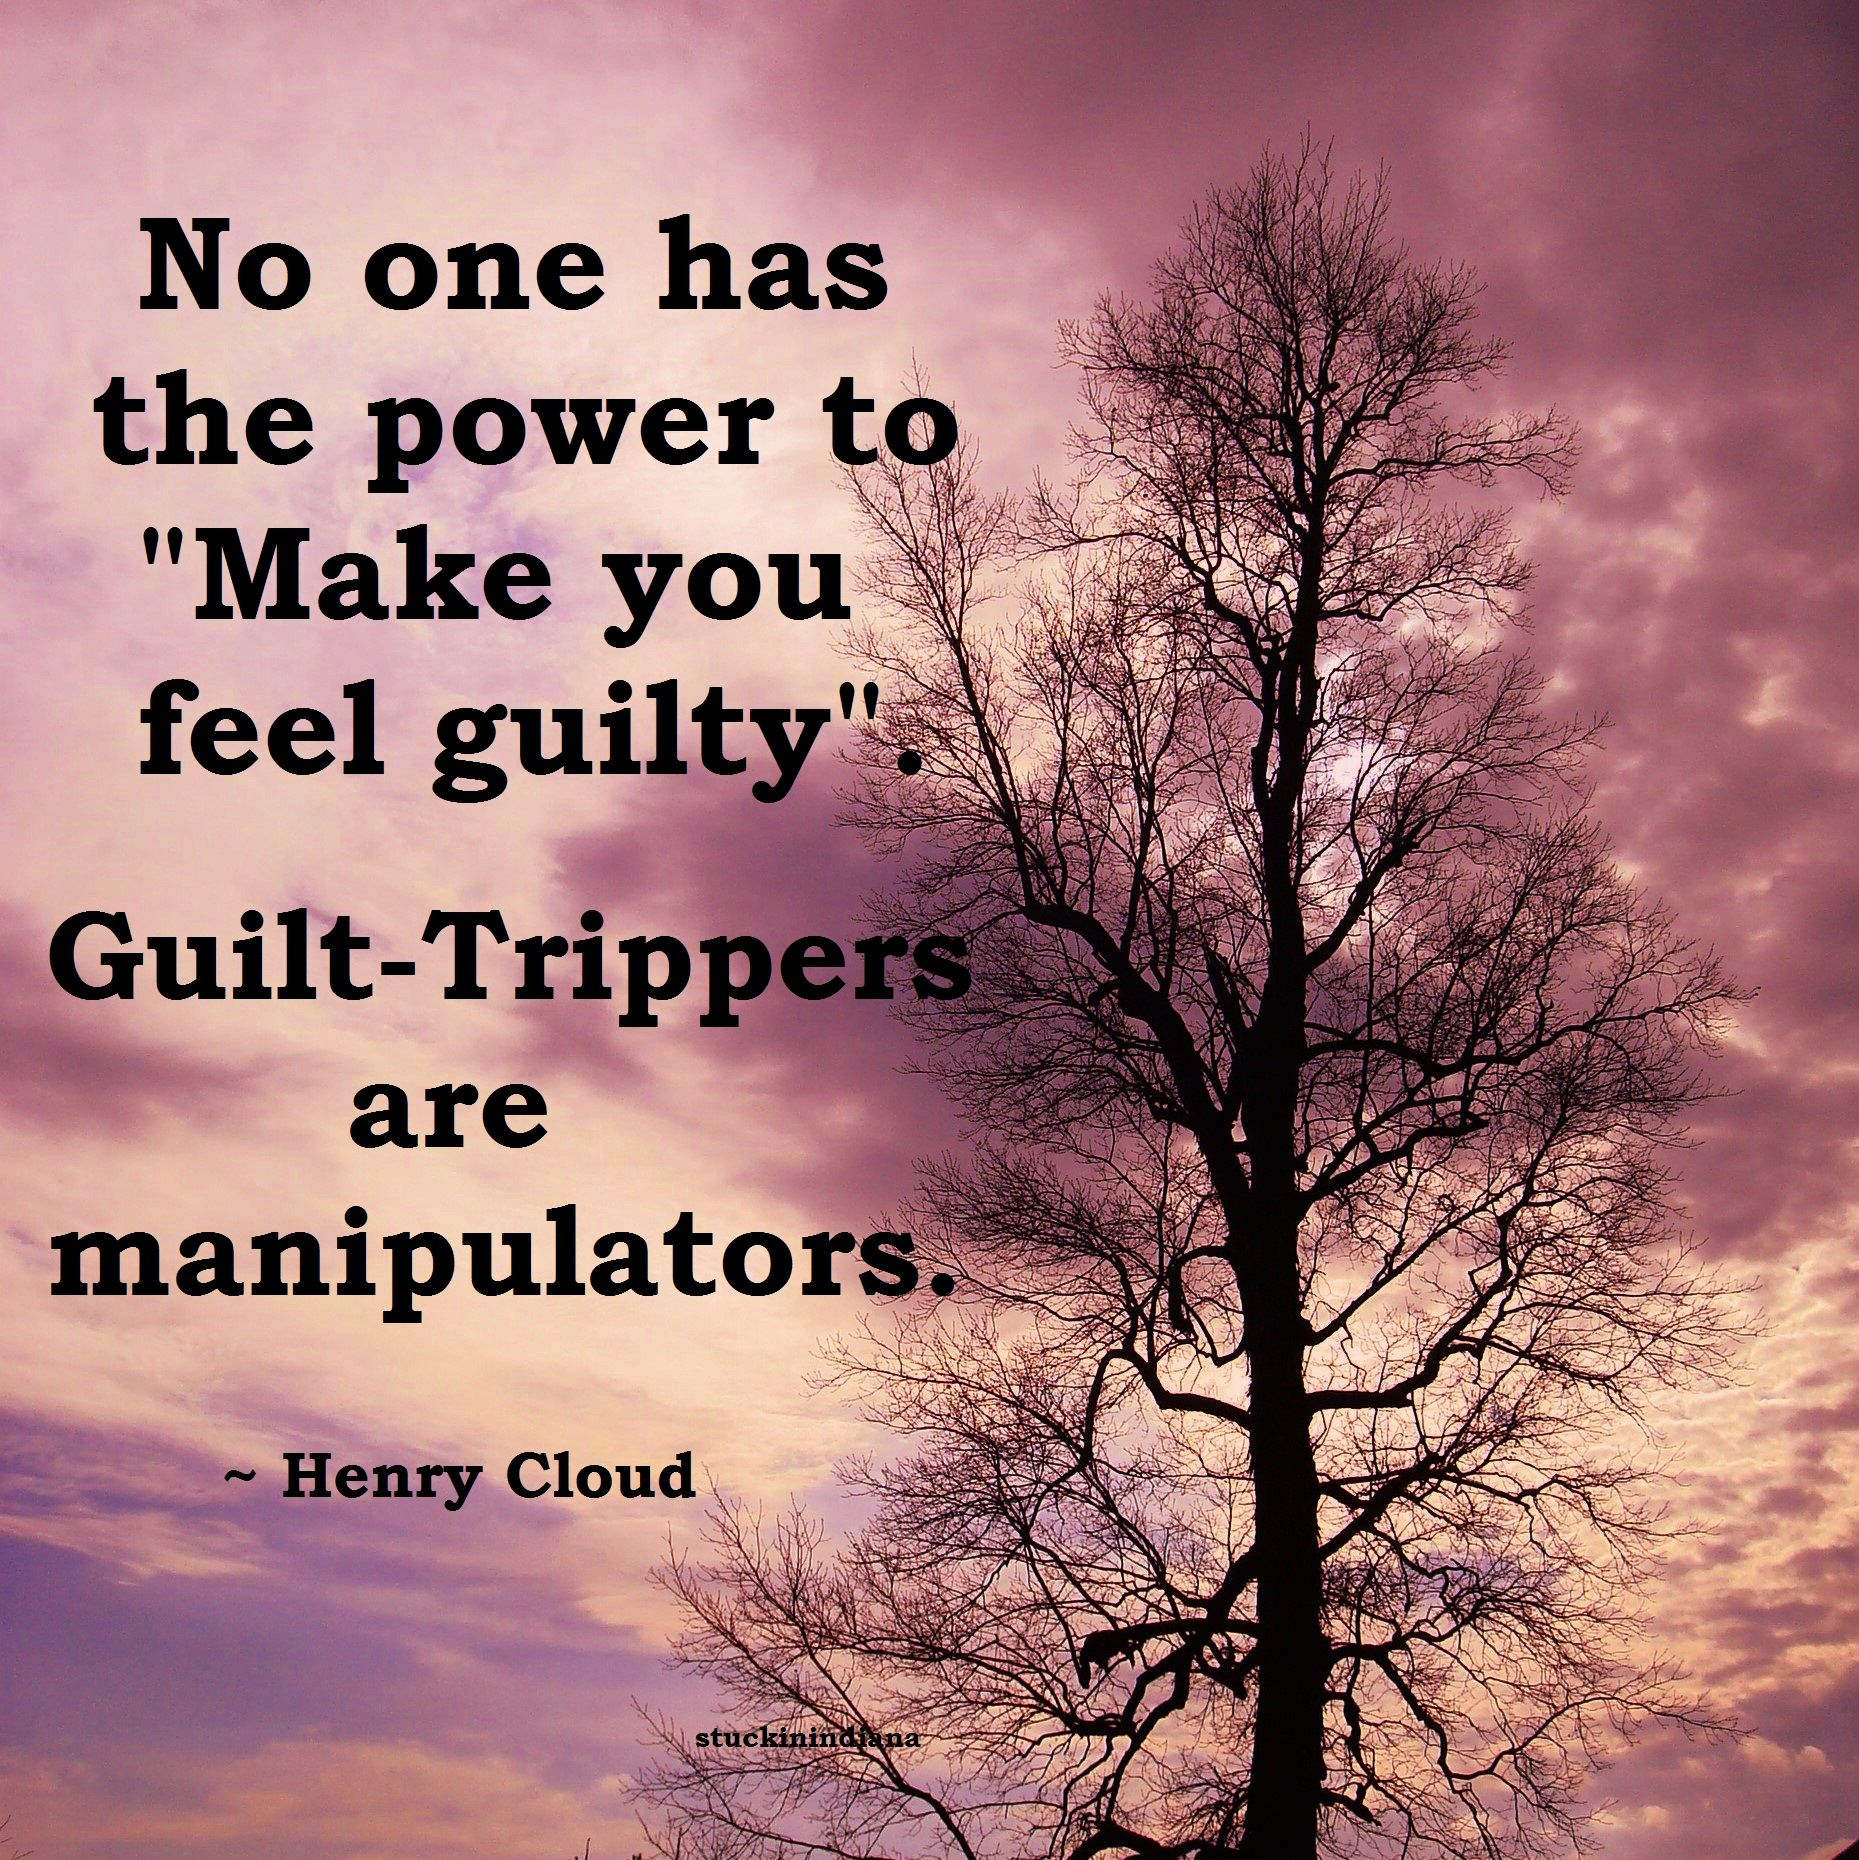 No One Has The Power To Make You Feel Guilty Guilt Trippers Are Manipulators Dr Henry Cloud Quote Guilt Henry Cloud Make You Feel